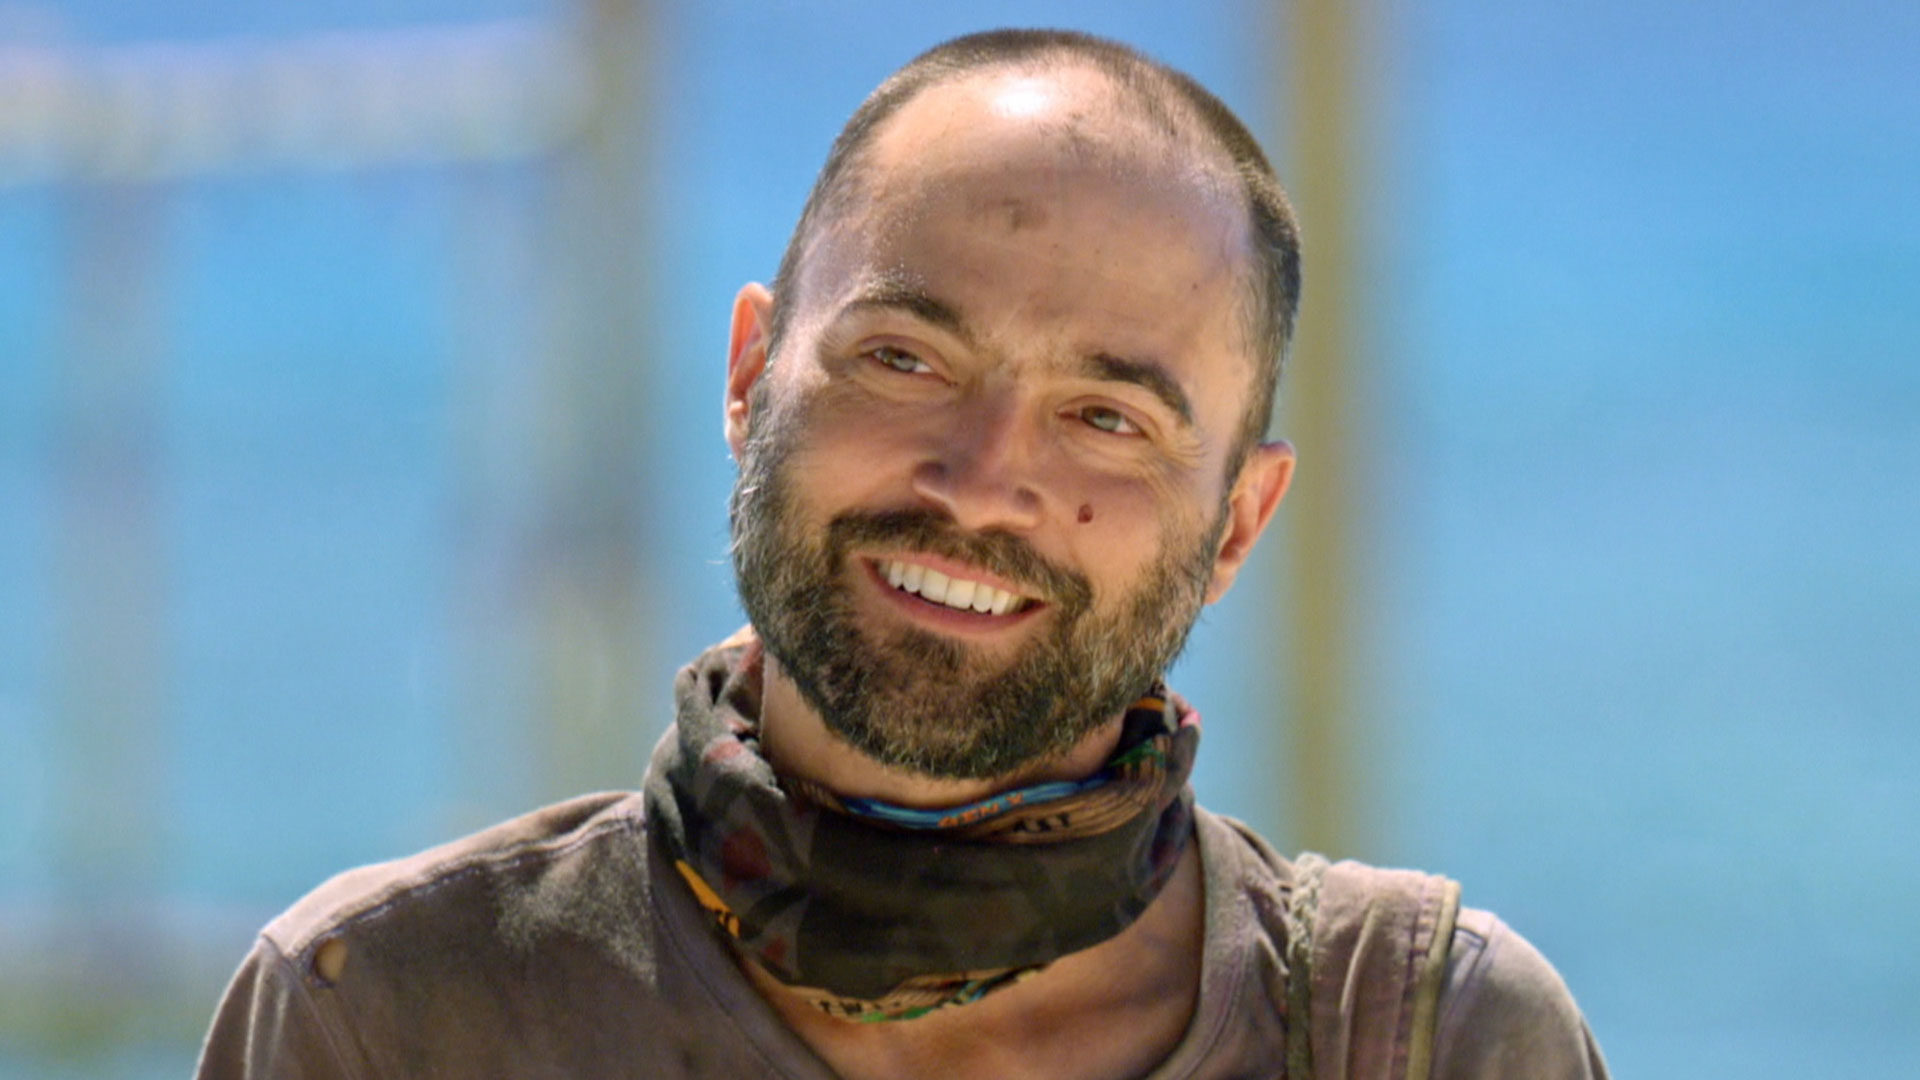 David shares a smile before hearing the challenge details.